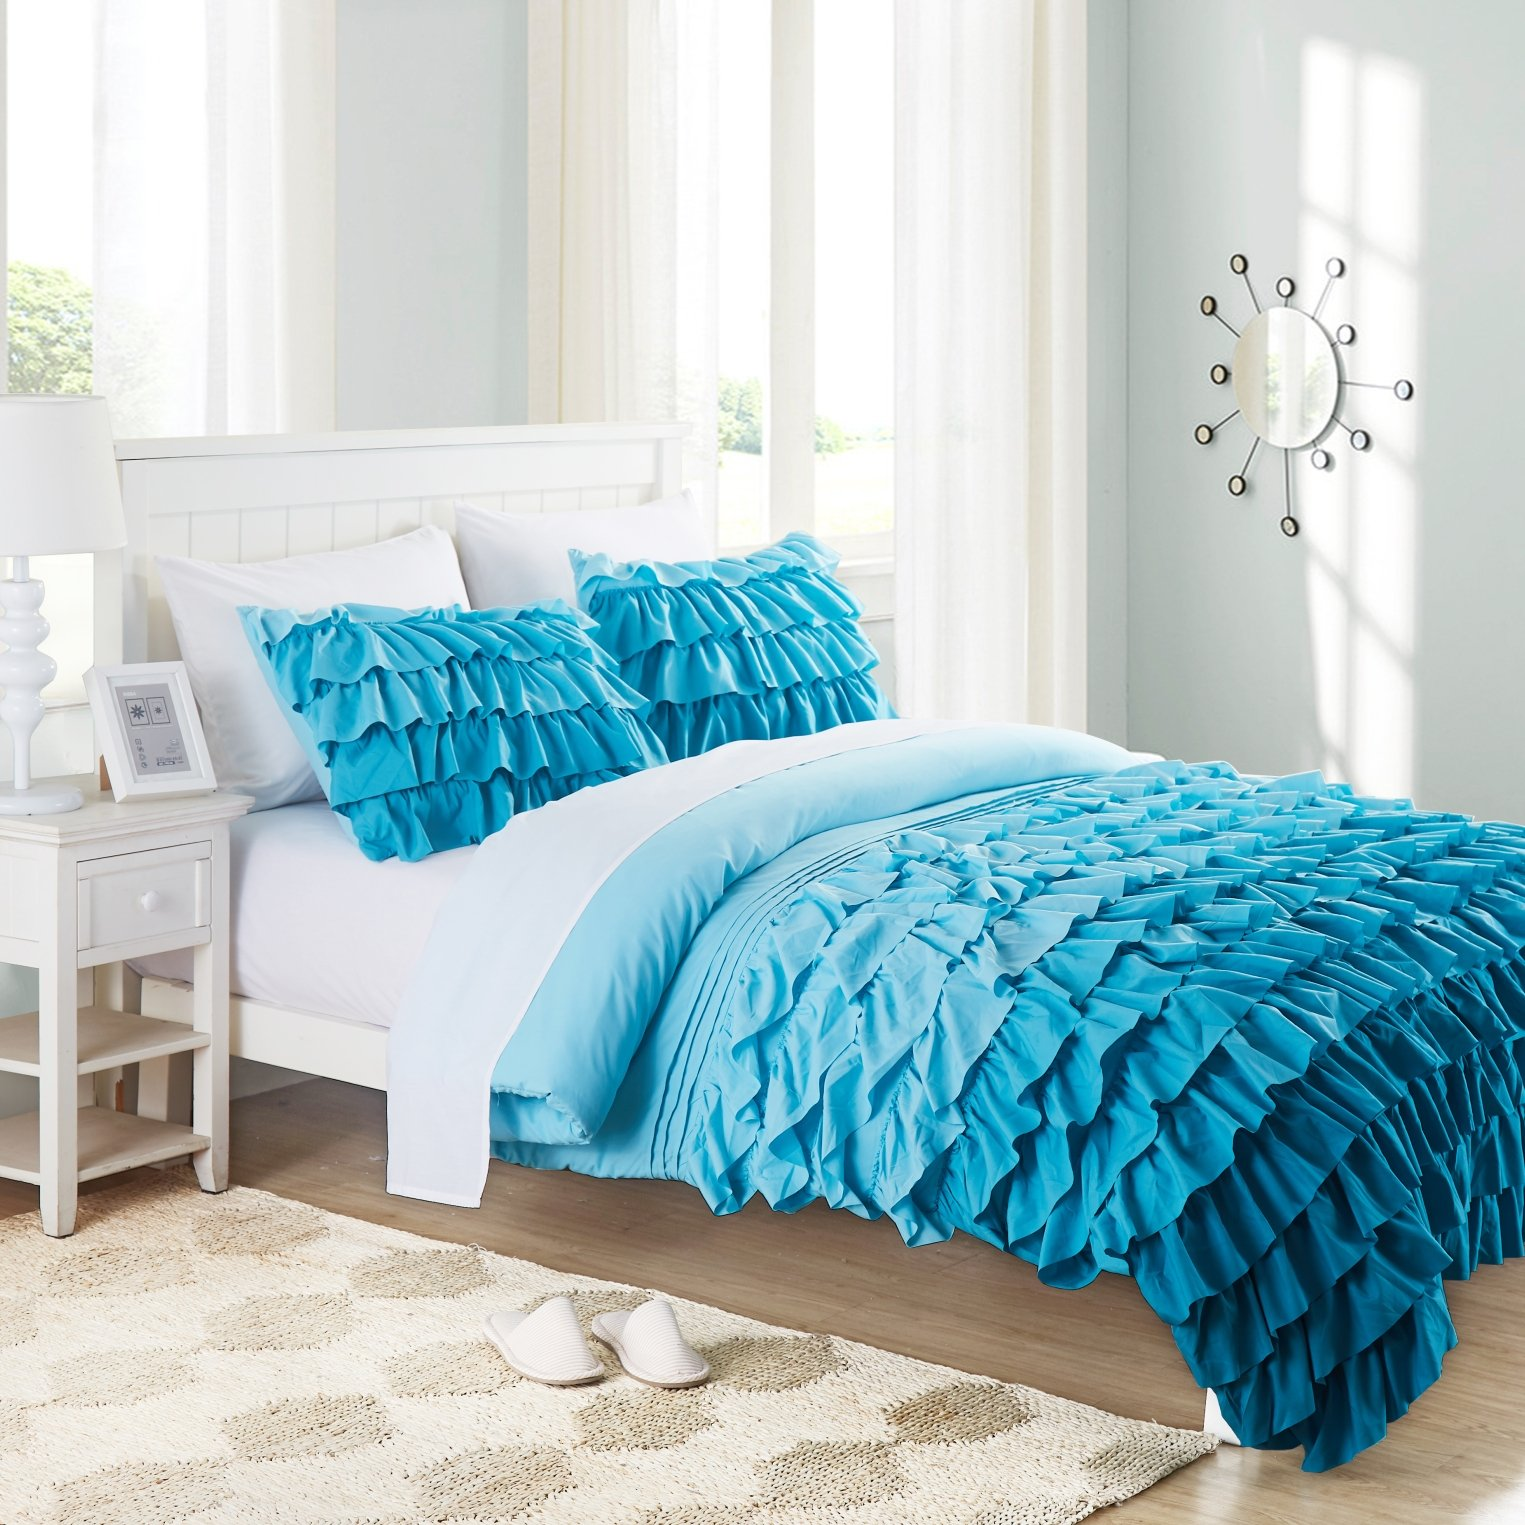 Cassiel Home Gorgeous 3 Pieces Waterfall Flowing Ruffle Comforter Set Girl's Bedding Set Gifts for Kids Teen (Queen, Teal)